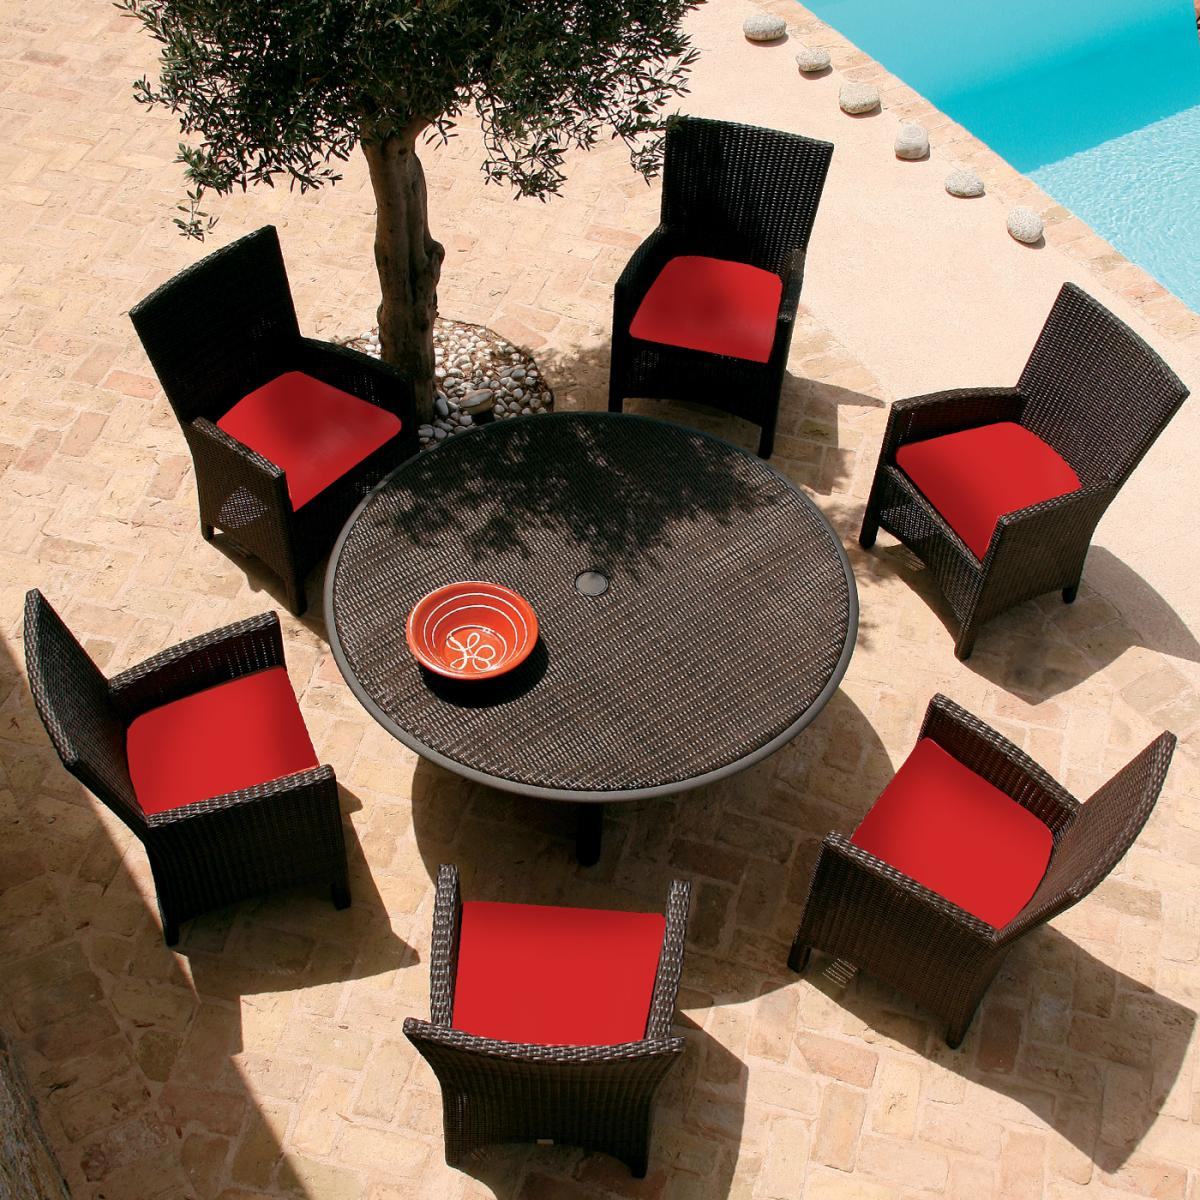 View The Full Image Clifton Nurseries Barlow Tyrie Savannah 6 Seater  Outdoor Dining Set